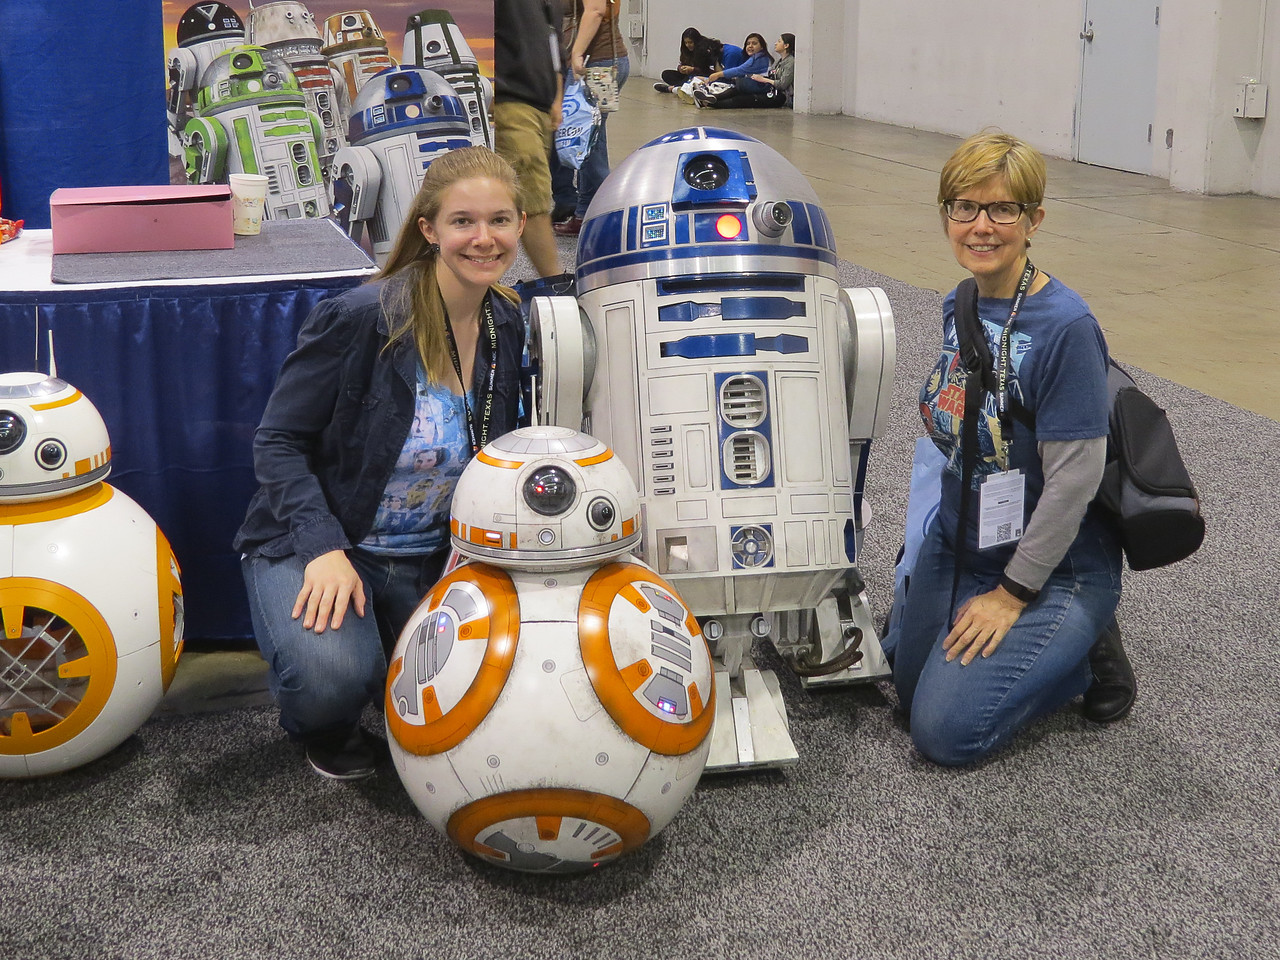 My daughter, Halley, and I at WonderCon in Anaheim